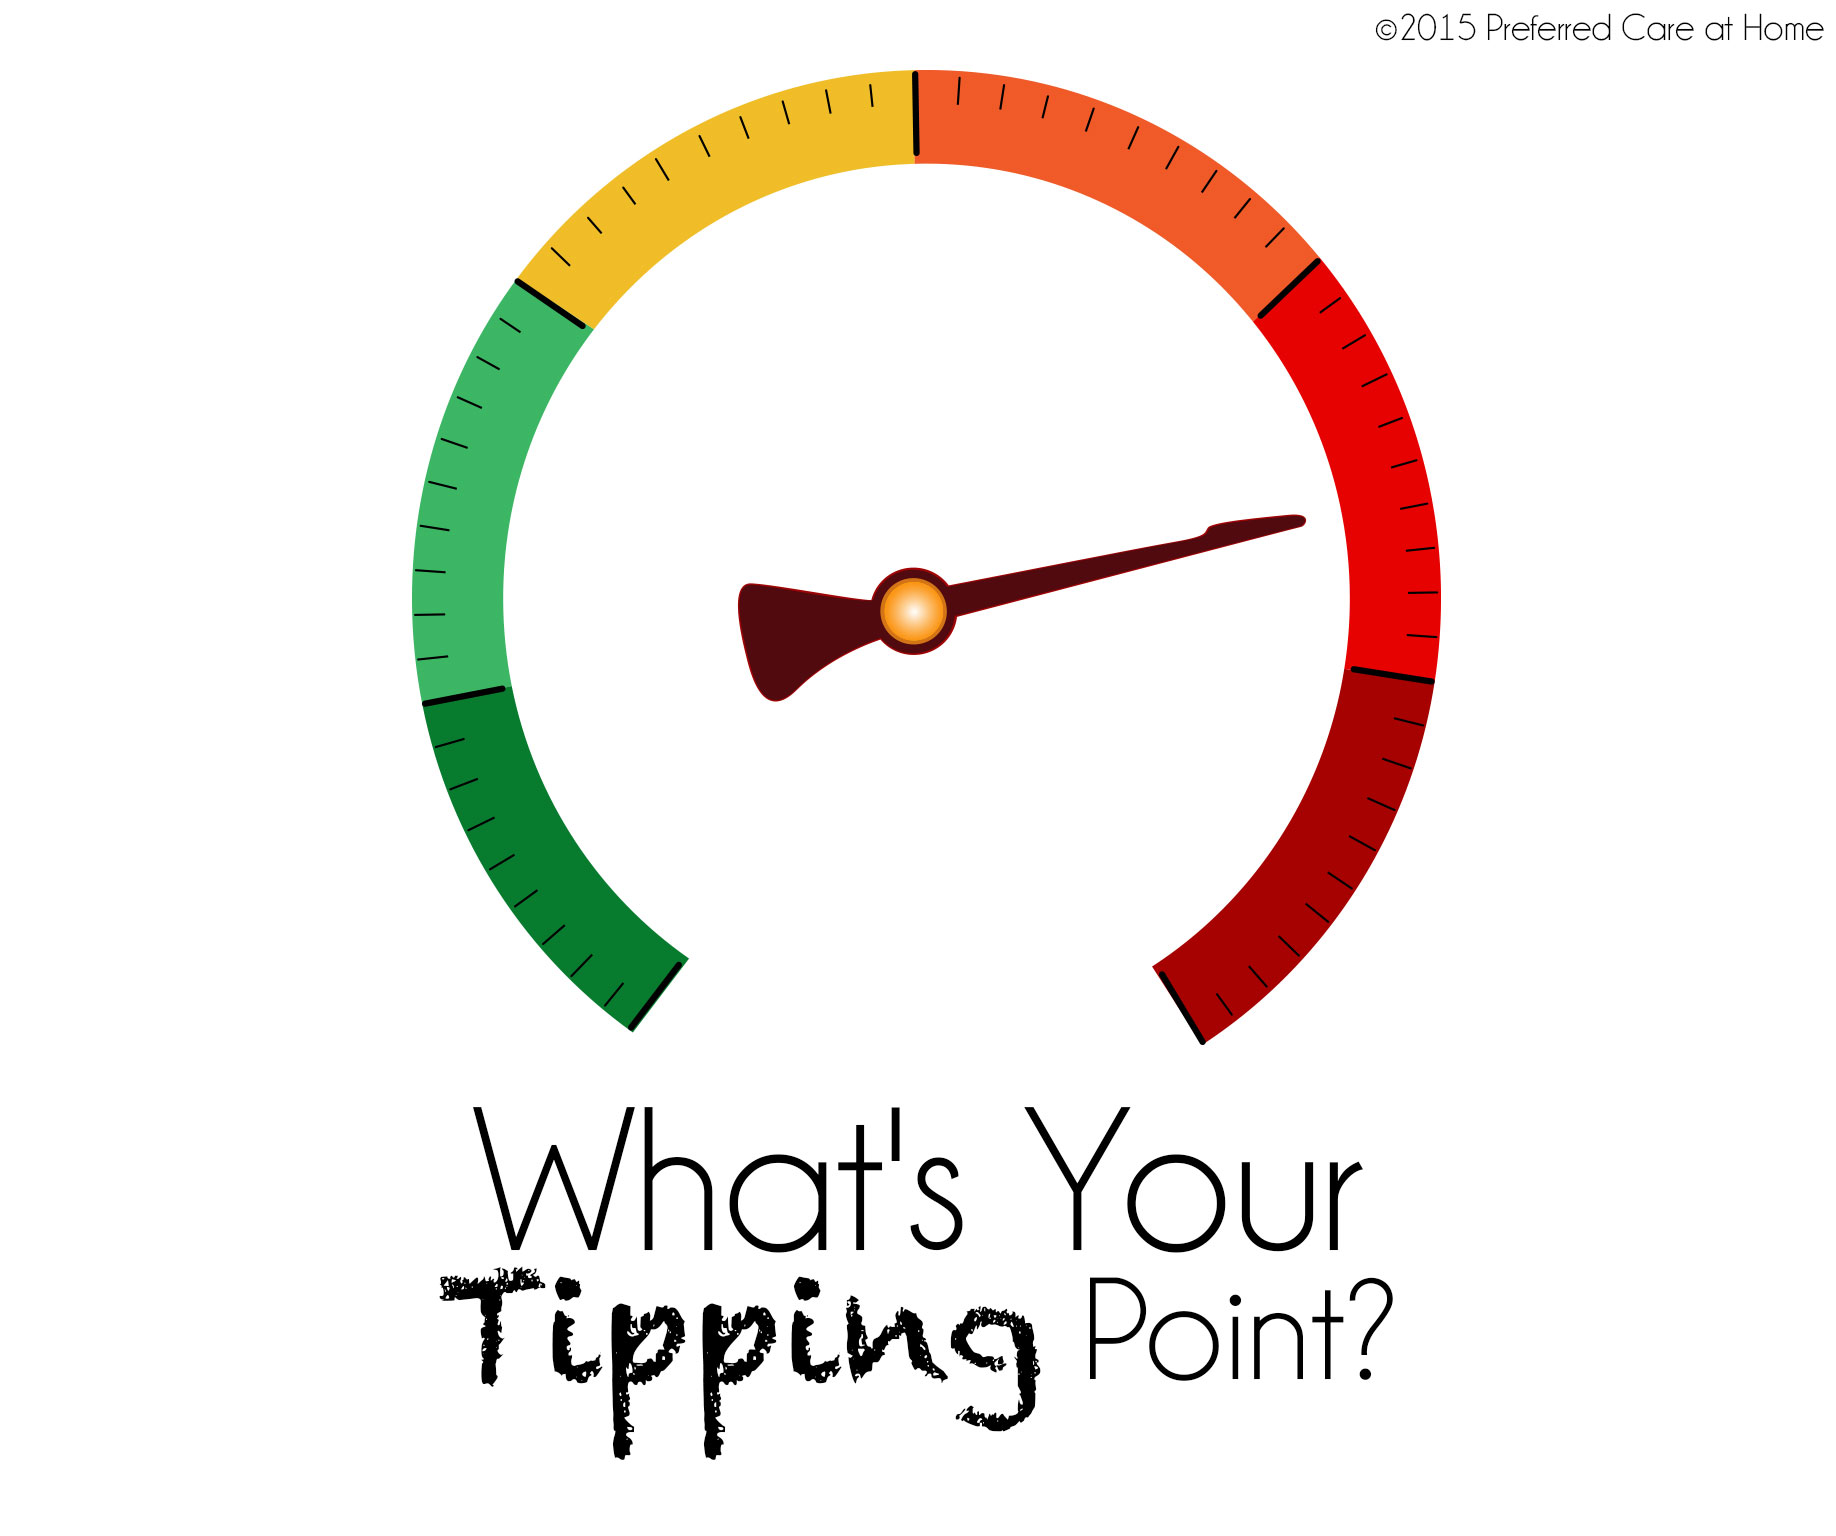 Caregiving: What's Your Tipping Point?